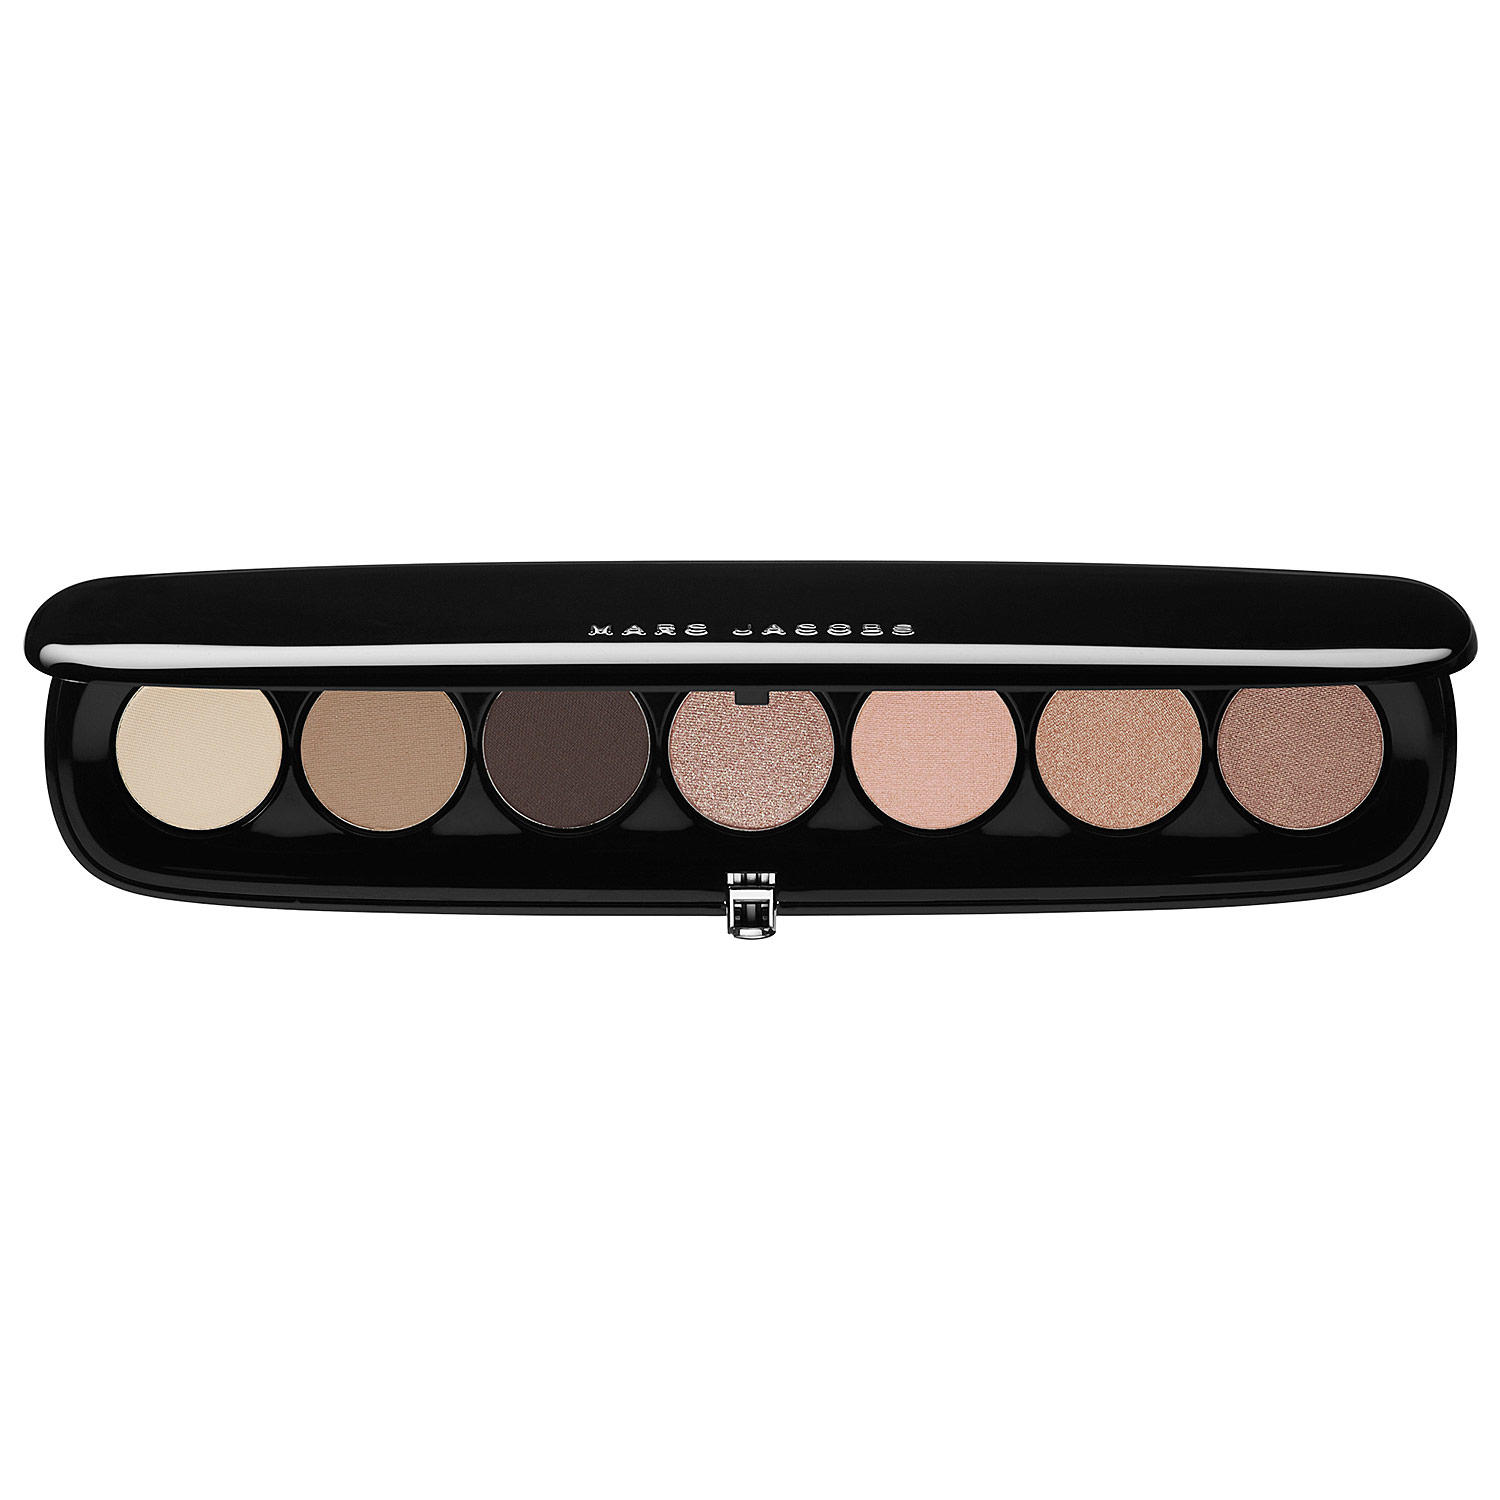 Repeat-Marc Jacobs 206 The Lolita Palette